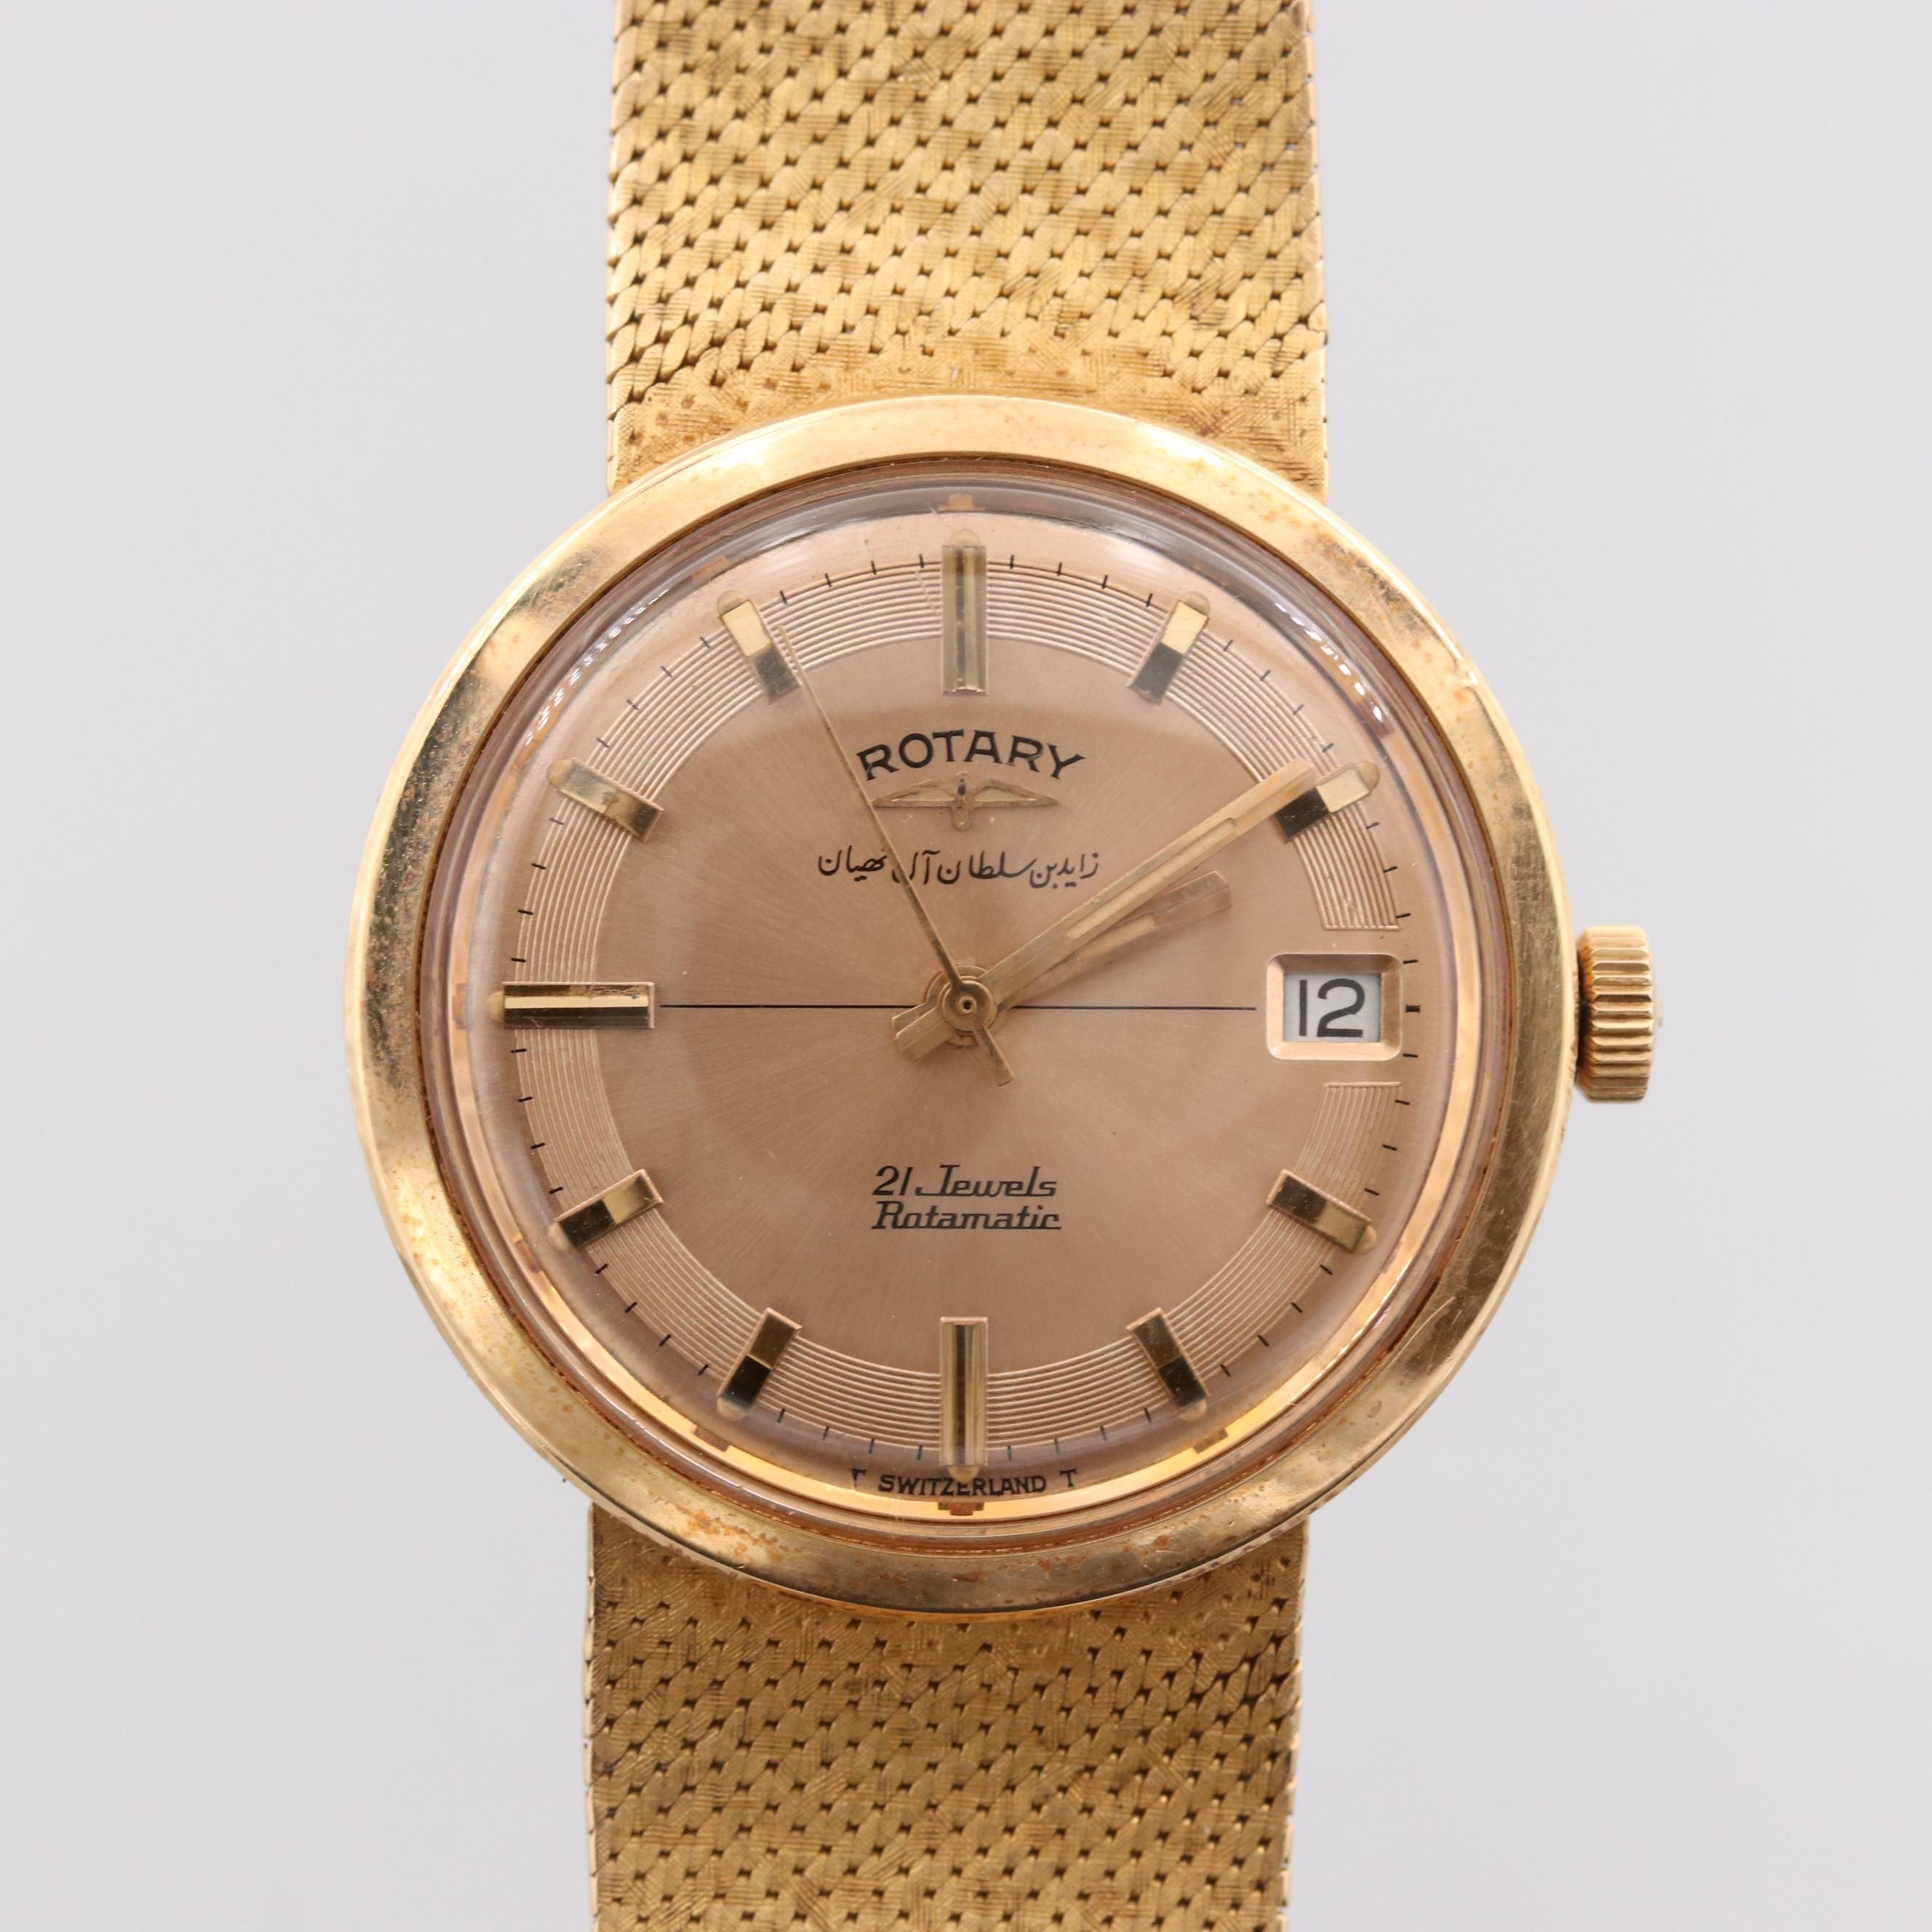 Vintage Rotary 18K Yellow Gold Automatic Wristwatch